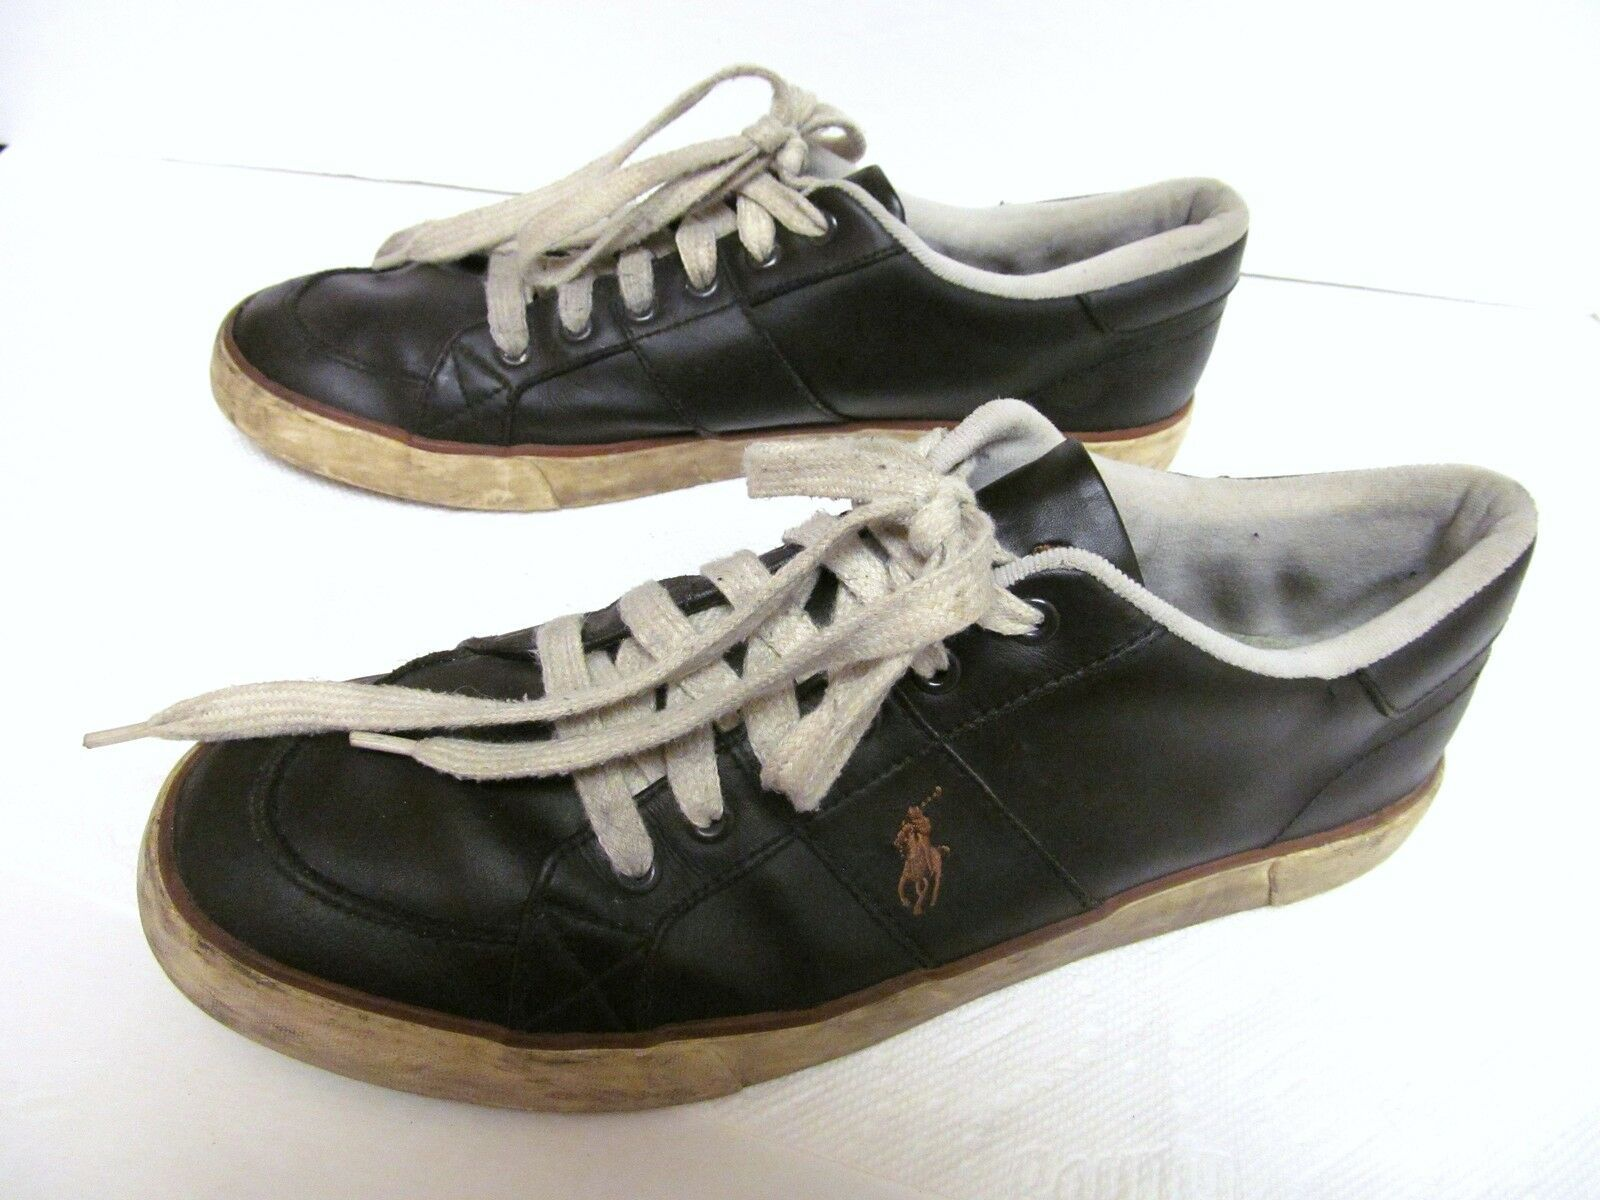 Polo RALPH LAUREN Men's Leather Sneakers Shoes Distressed Vintage Brown 13 D